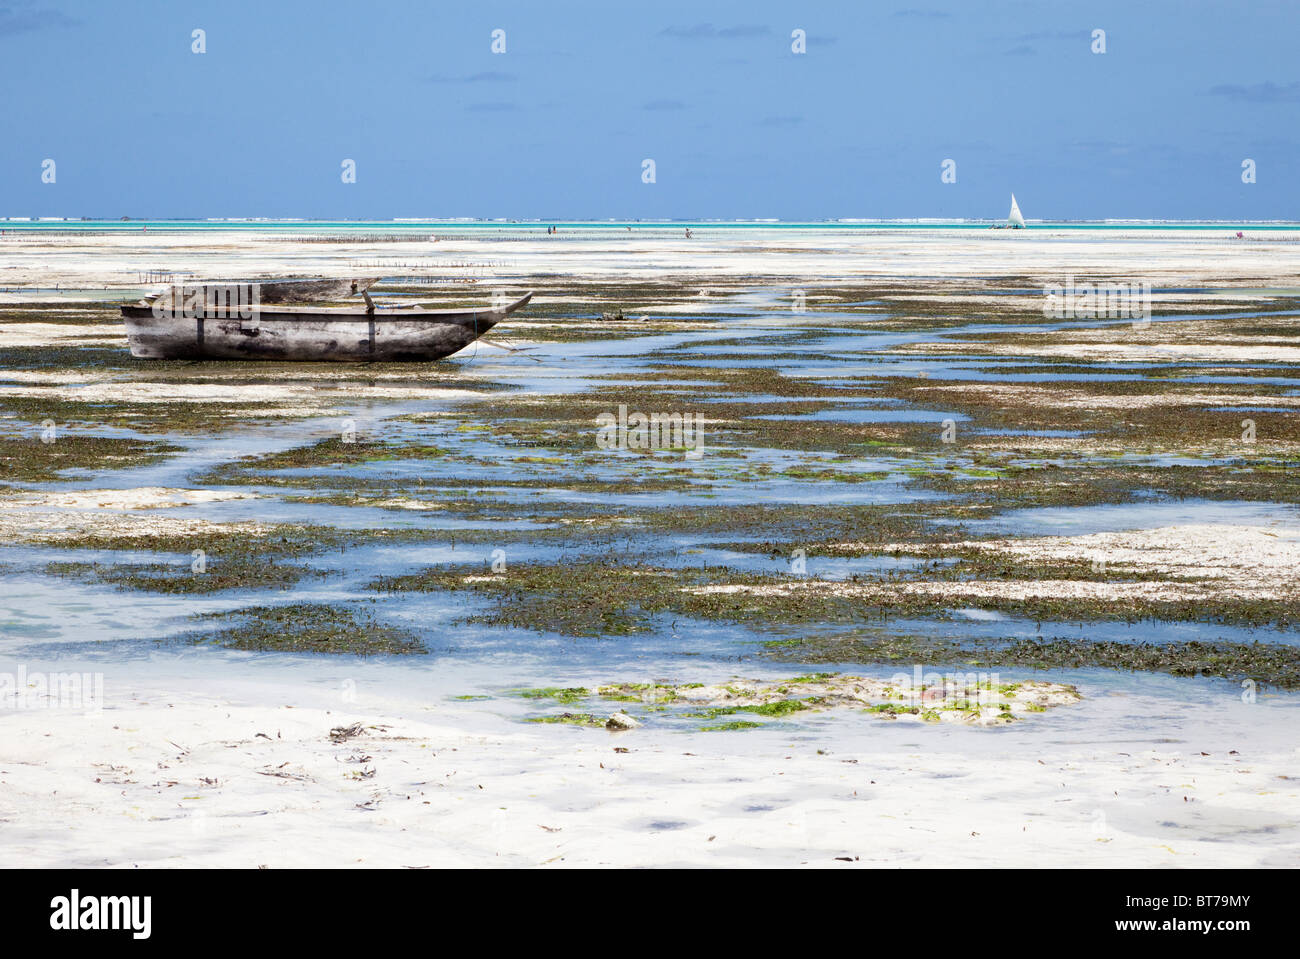 Jambiani, Zanzibar, Tanzania. Zanzibar's Eastern Shore at Low Tide. The protective reef is about a mile offshore. - Stock Image